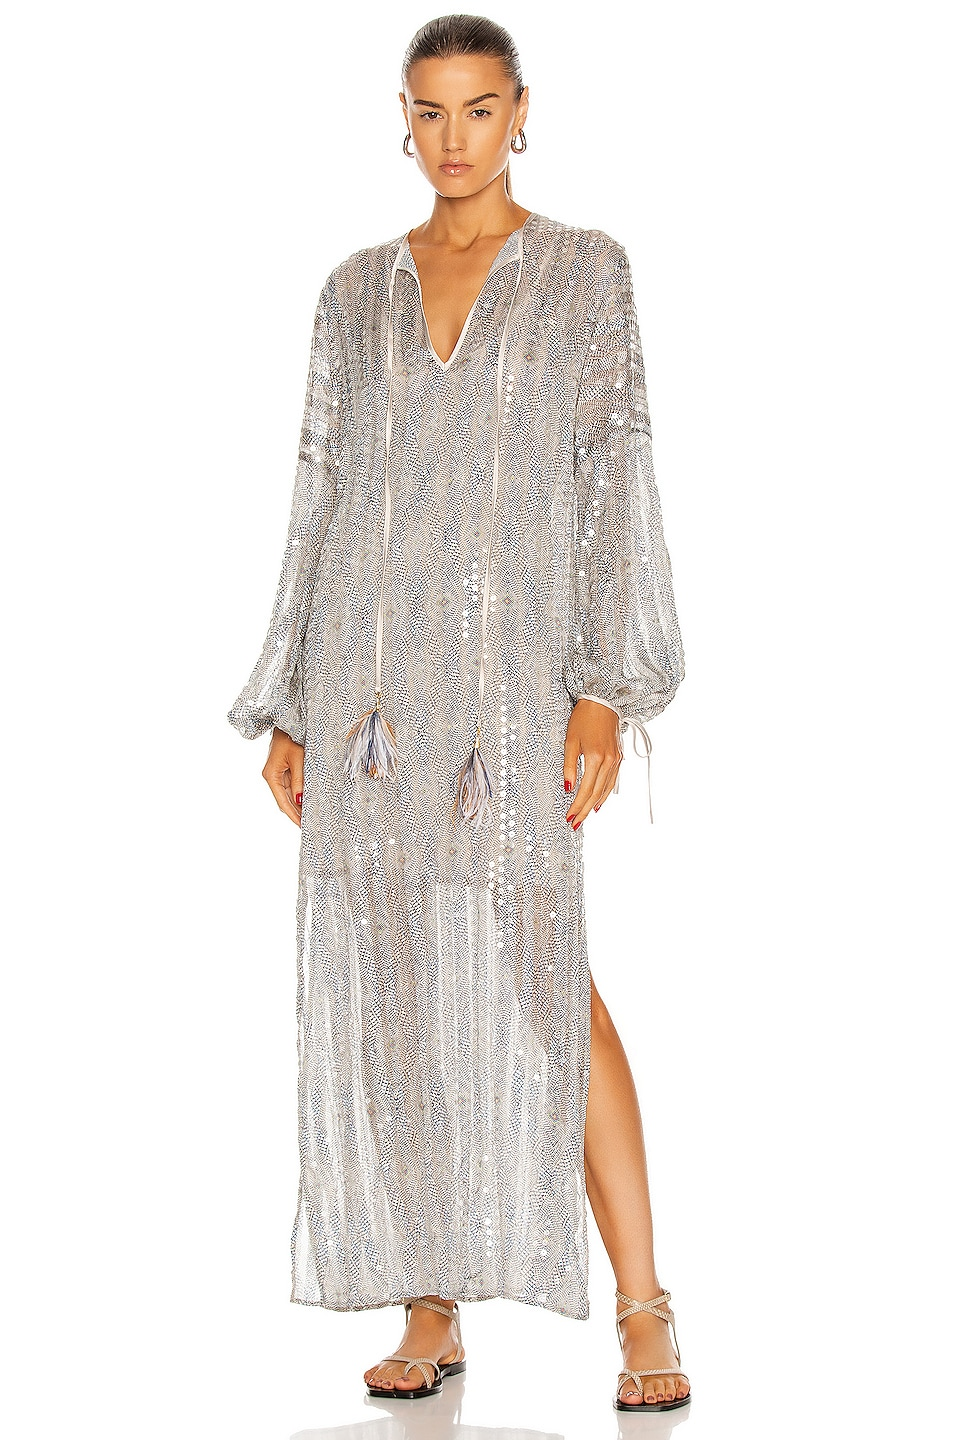 Image 1 of SILVIA TCHERASSI Mayfair Dress in Silver Breeze Sequin